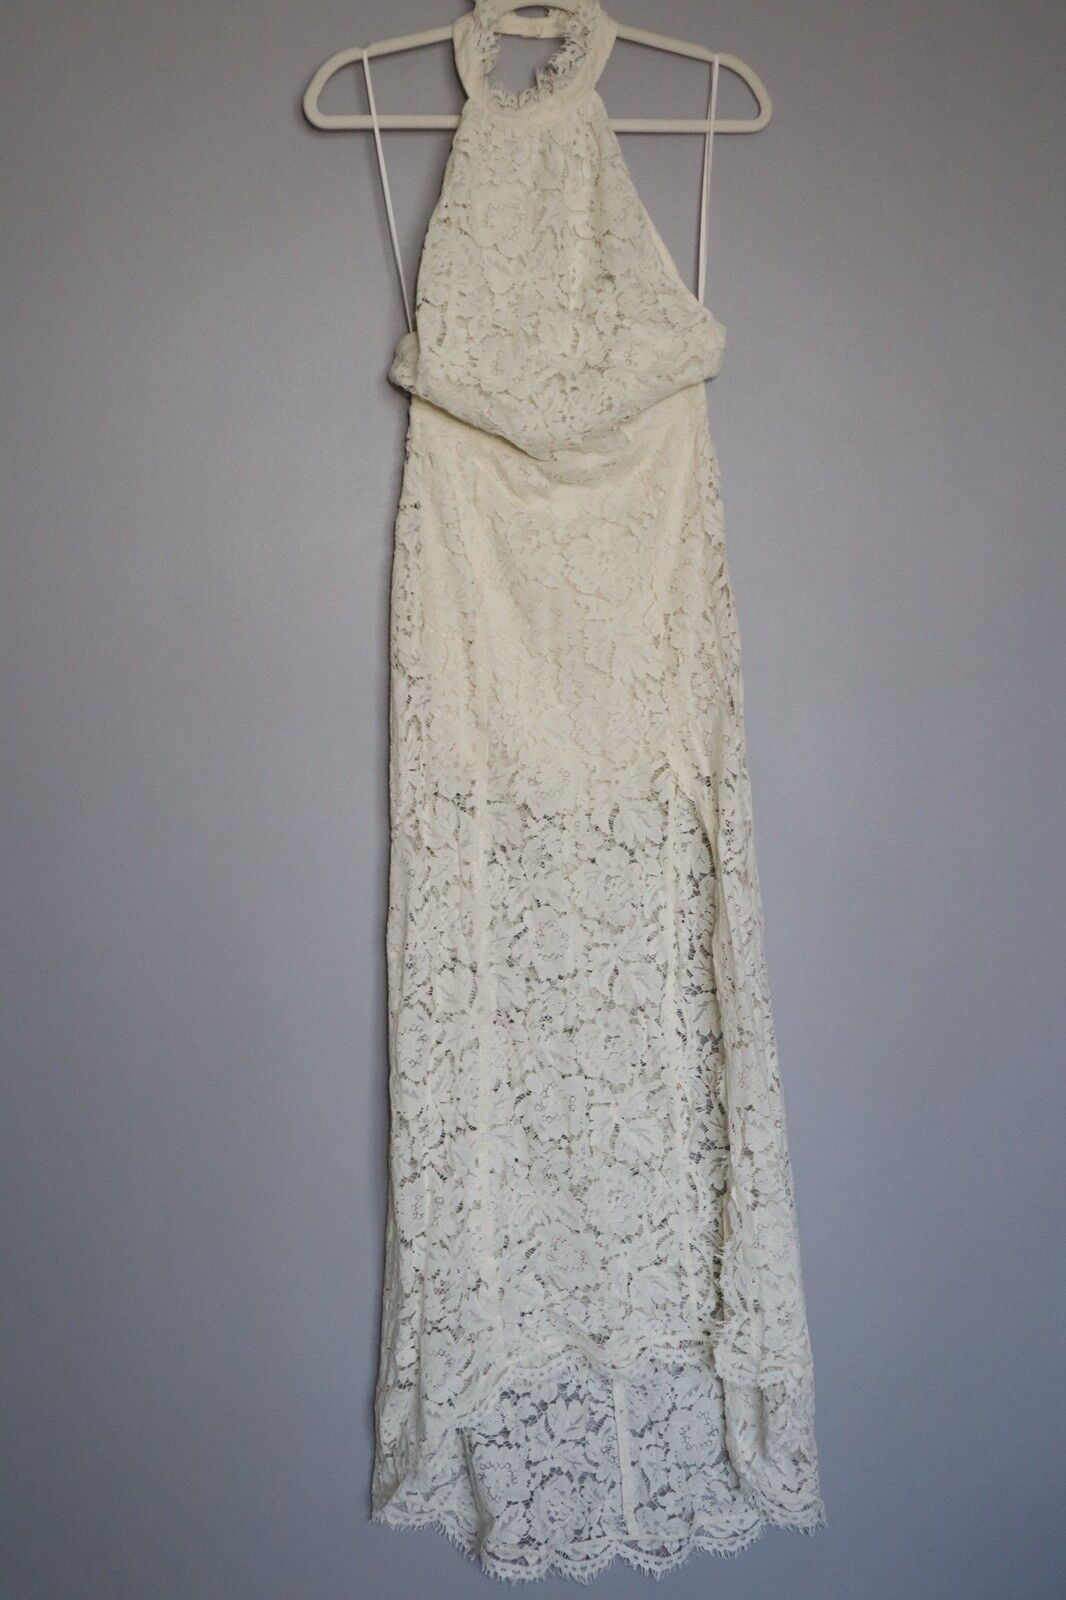 New Jen's Pirate Booty Booty Booty Limited Edition ivory Lace Halter Dress M 6b3210